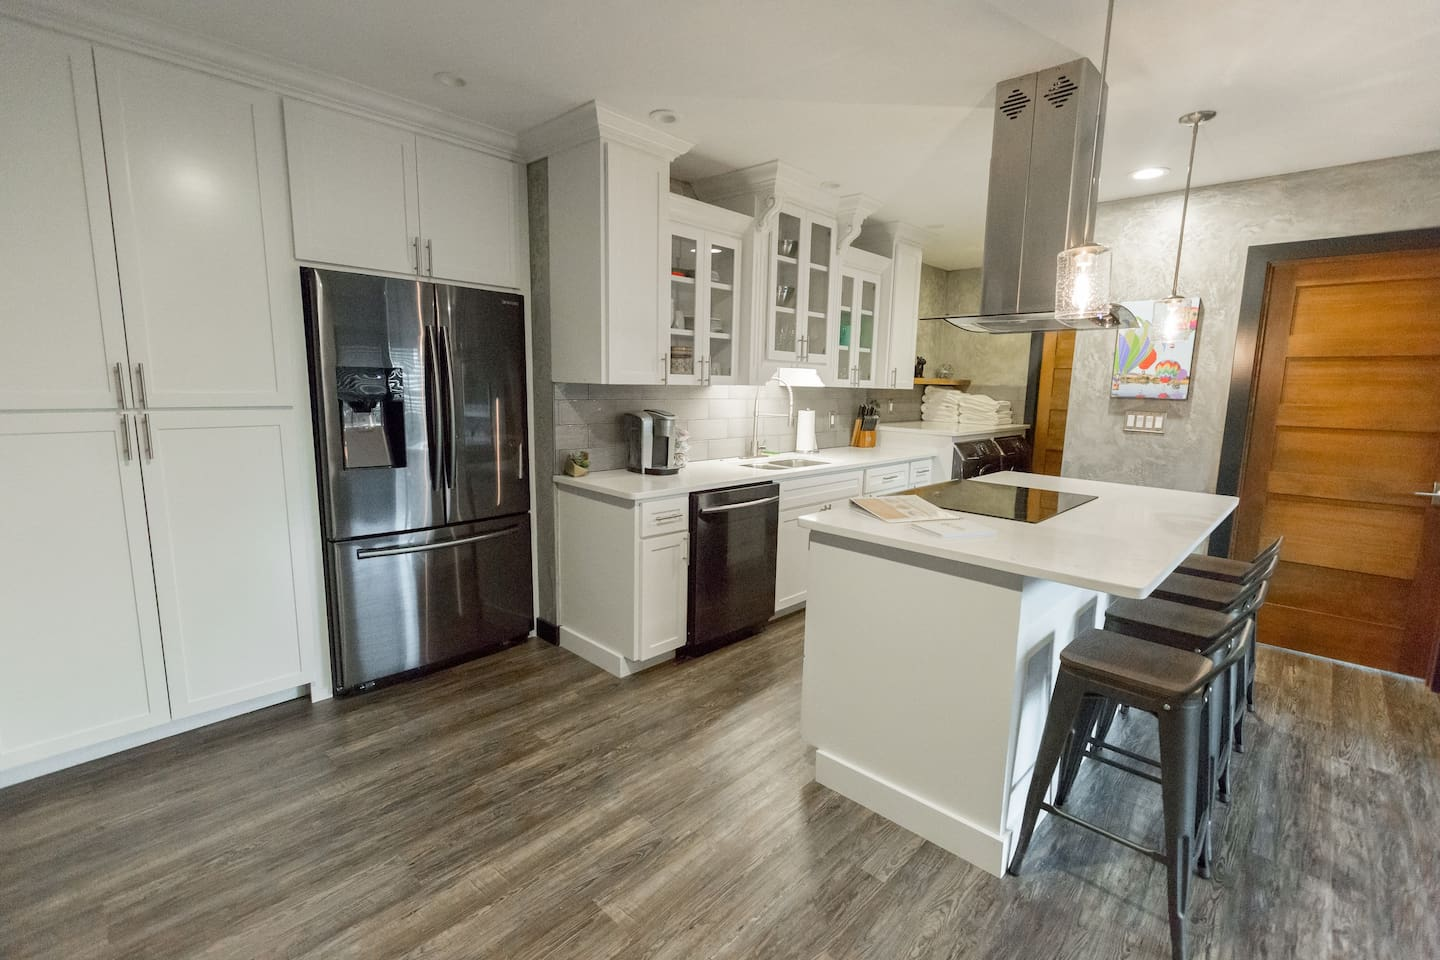 Ample storage and a generously stocked kitchen allows the option to entertain at home.